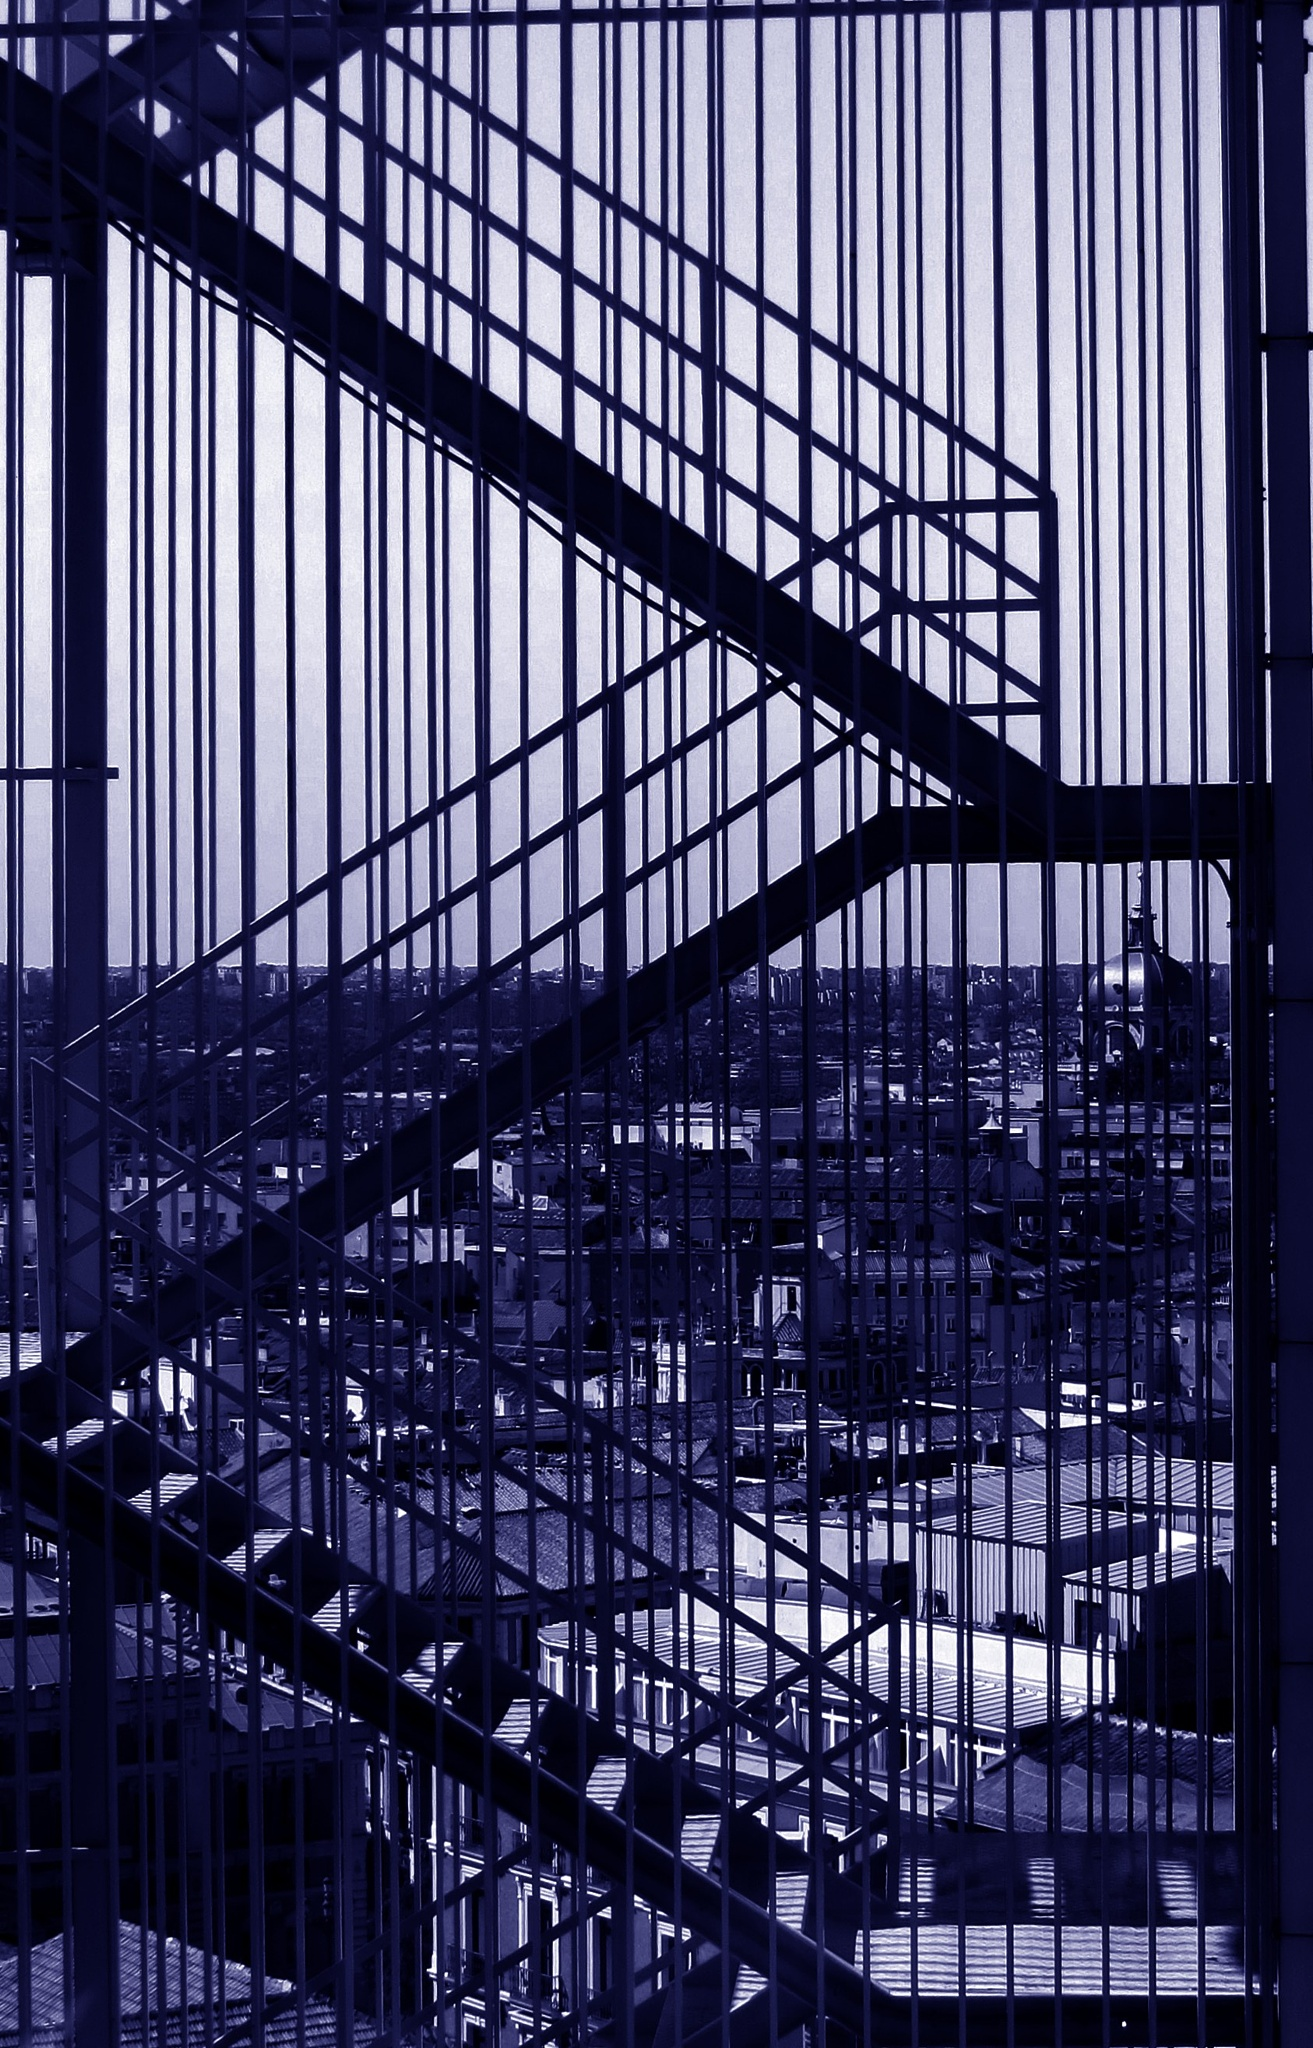 Stairs by Isabel Gonzalez Martil